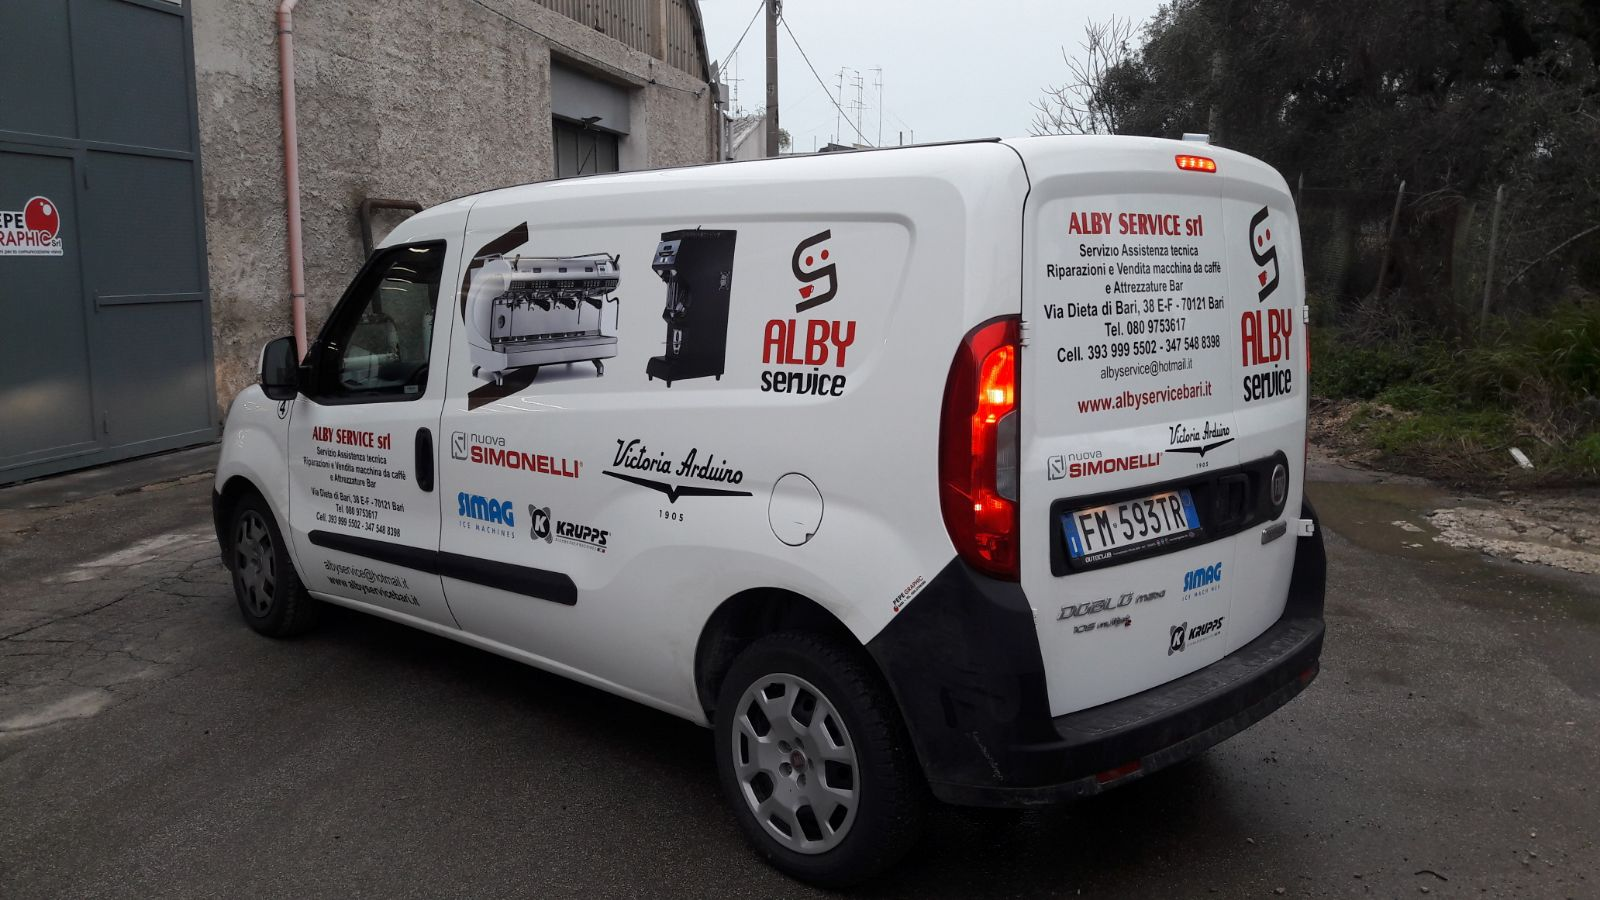 ALBY SERVICE